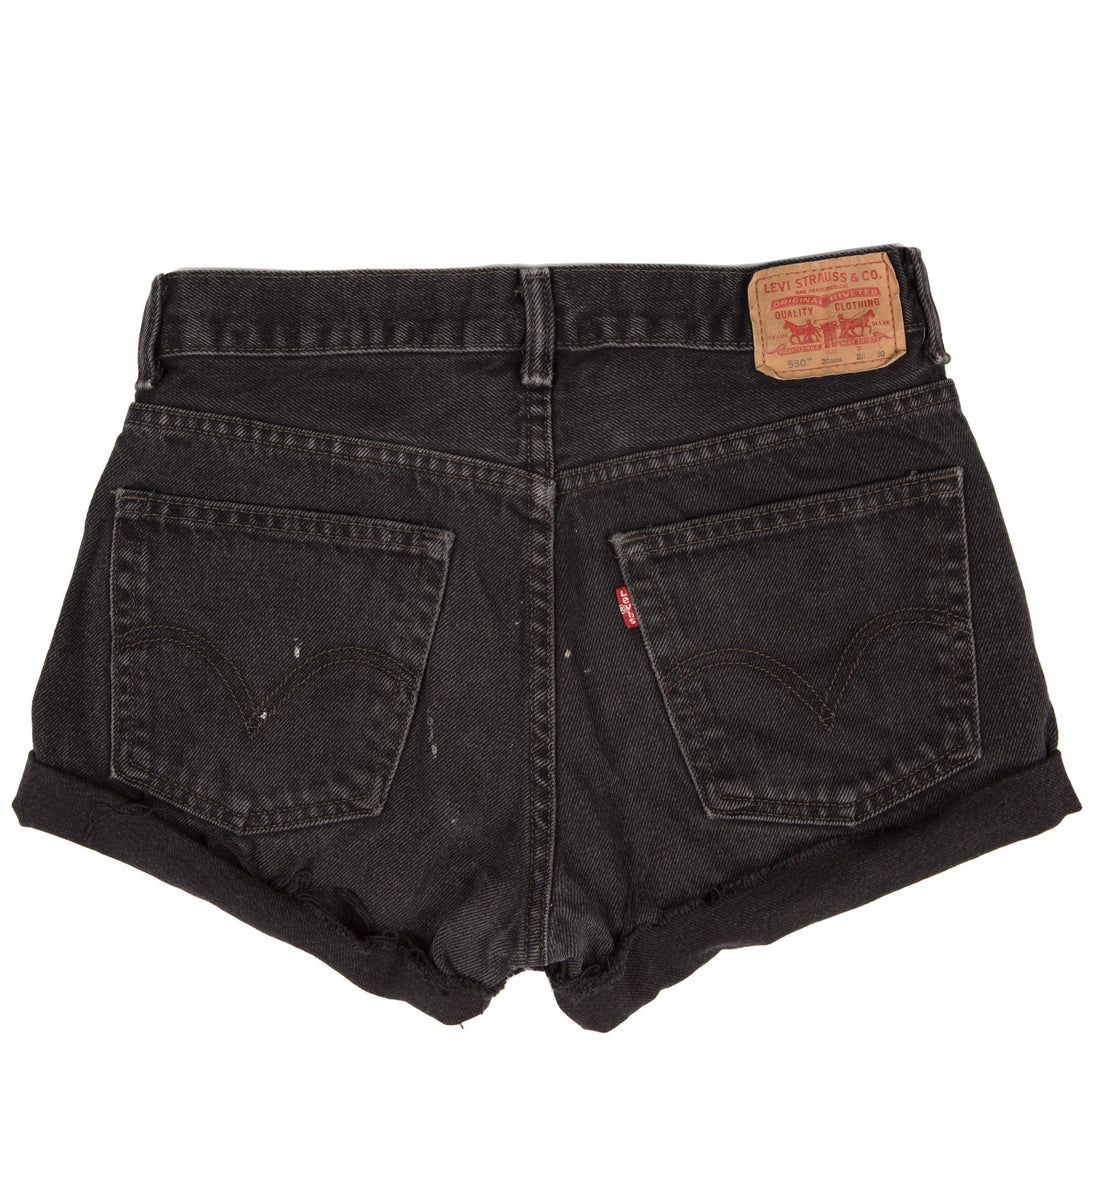 Vintage 550 Black Levis Cutoffs Jeans - Vintage - Iron and Resin